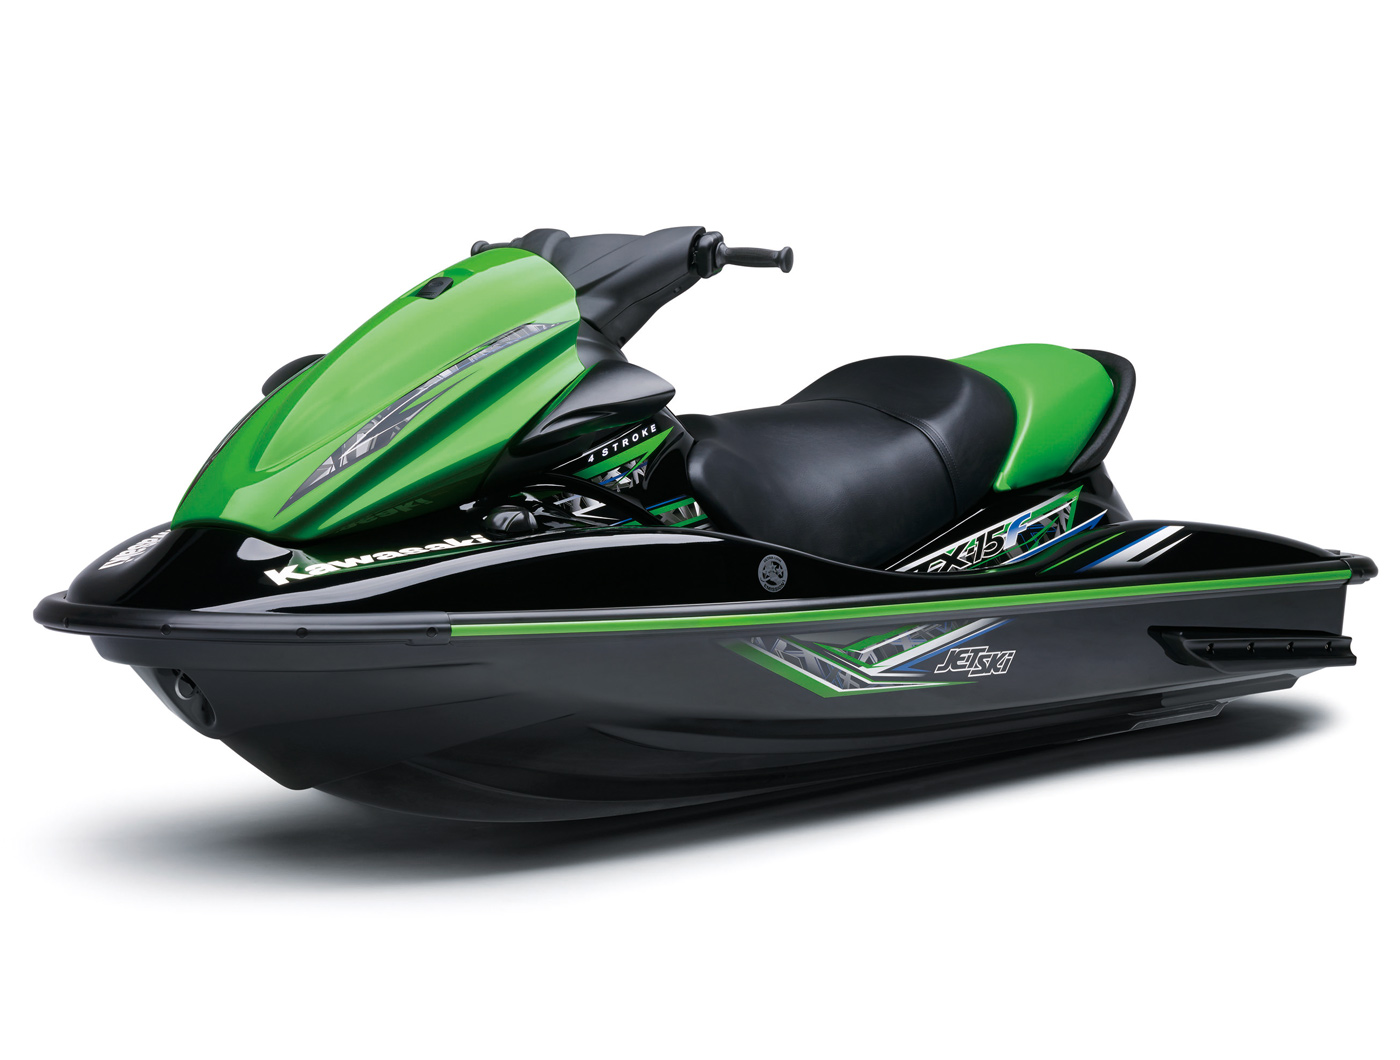 kawasaki jet ski engine kawasaki free engine image for. Black Bedroom Furniture Sets. Home Design Ideas